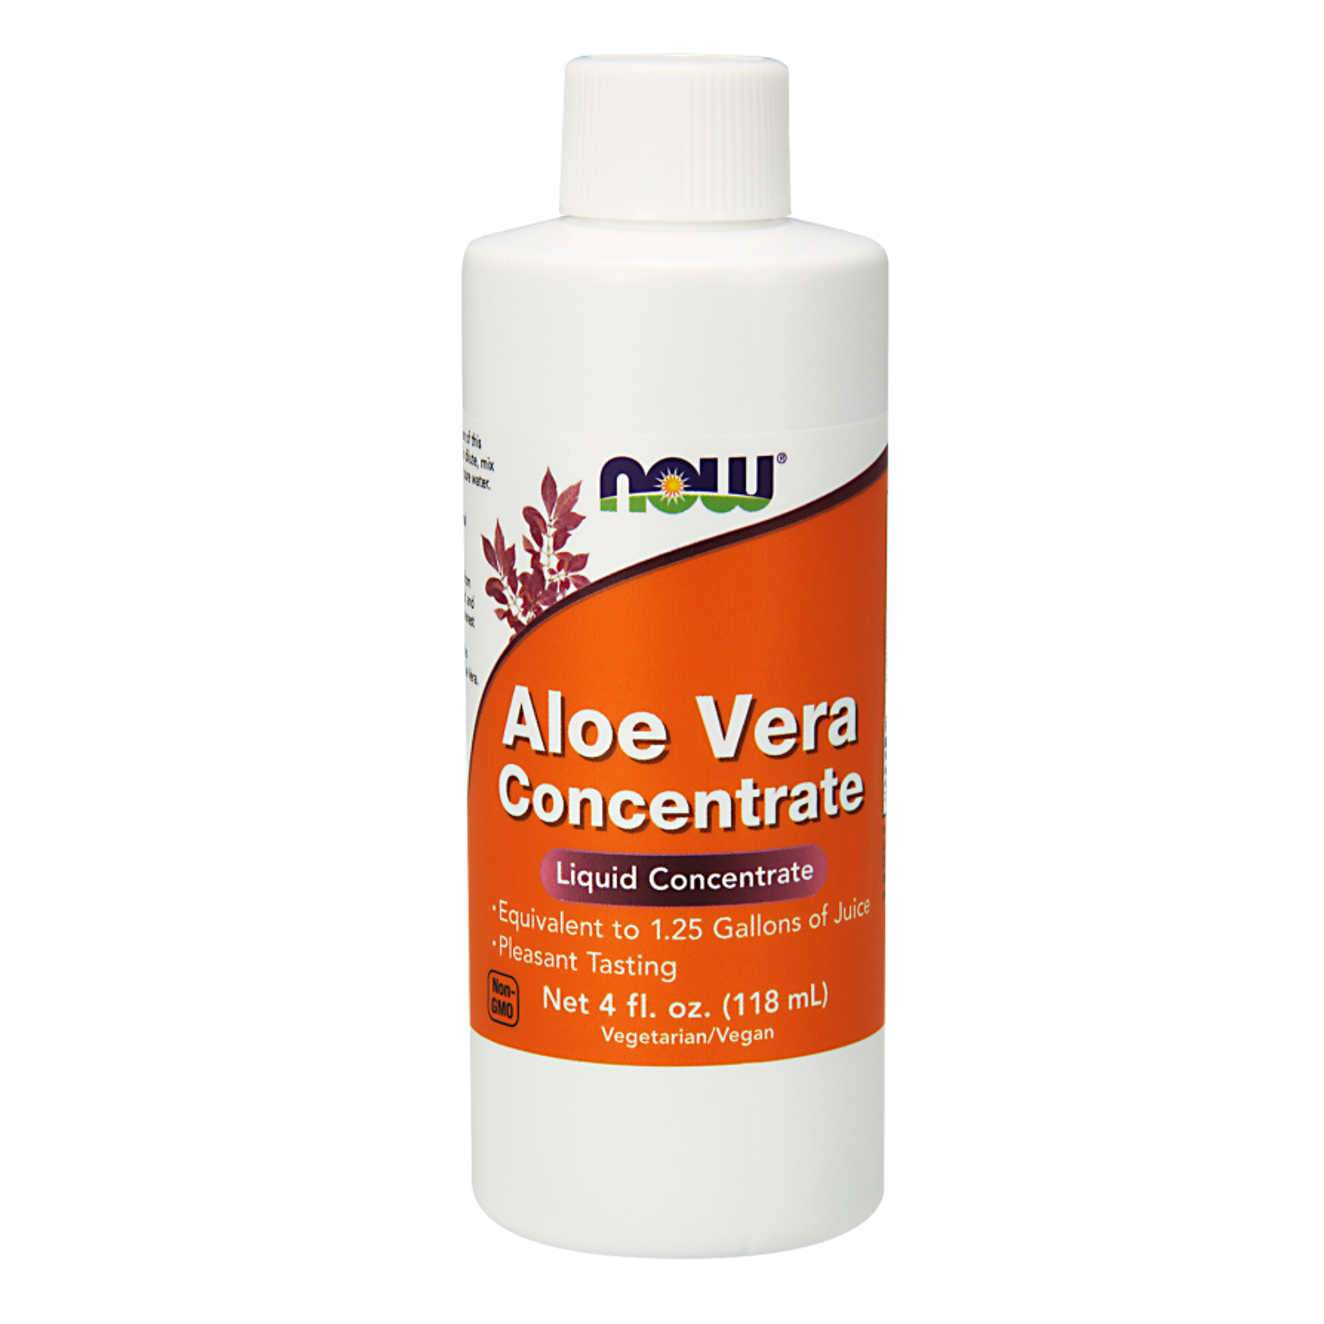 ALOE VERA CONCENTRATE - 118ml